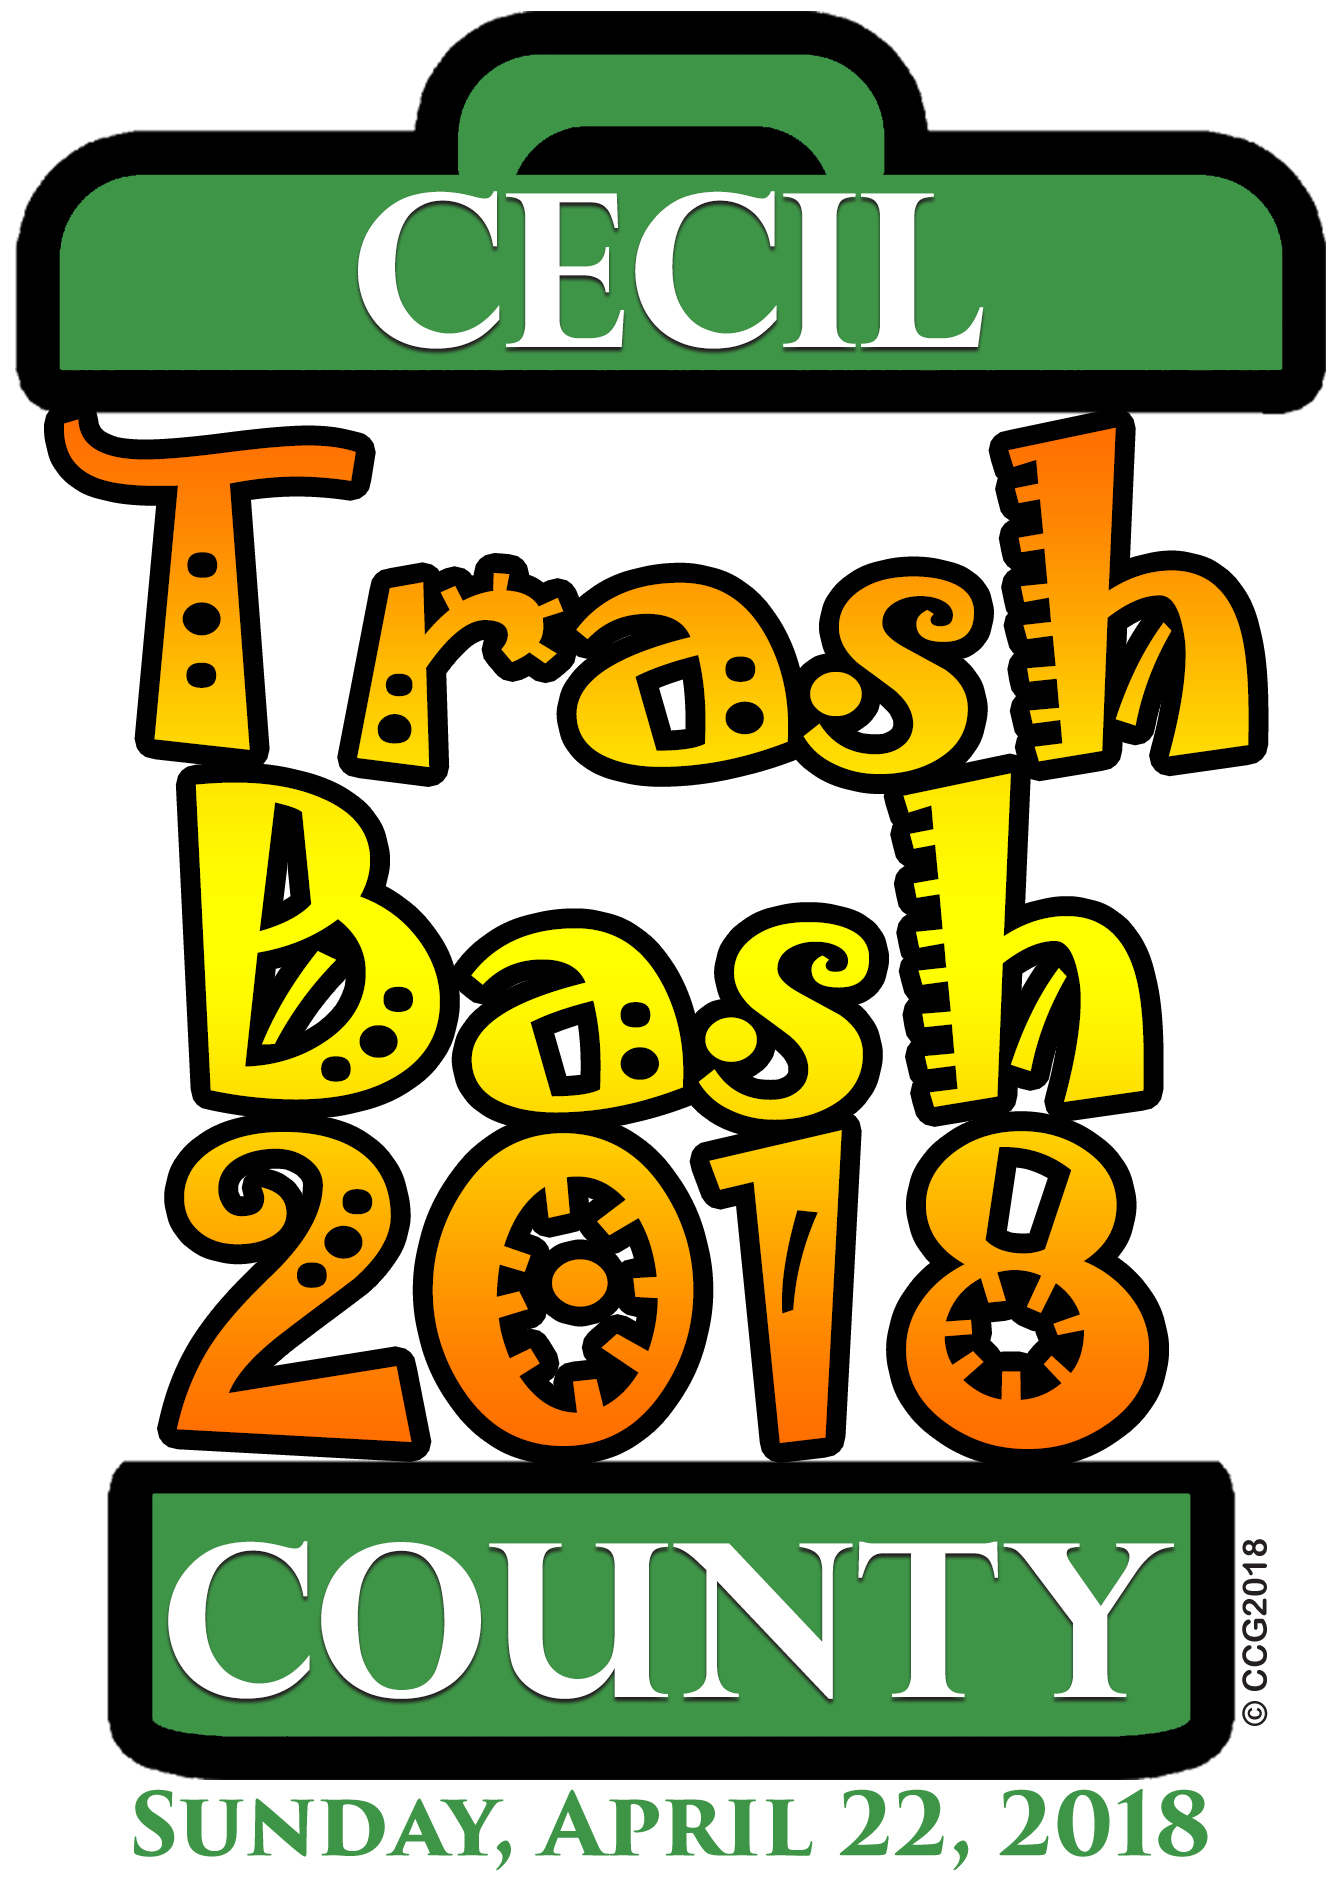 CECIL COUNTY TRASH BASH 2018